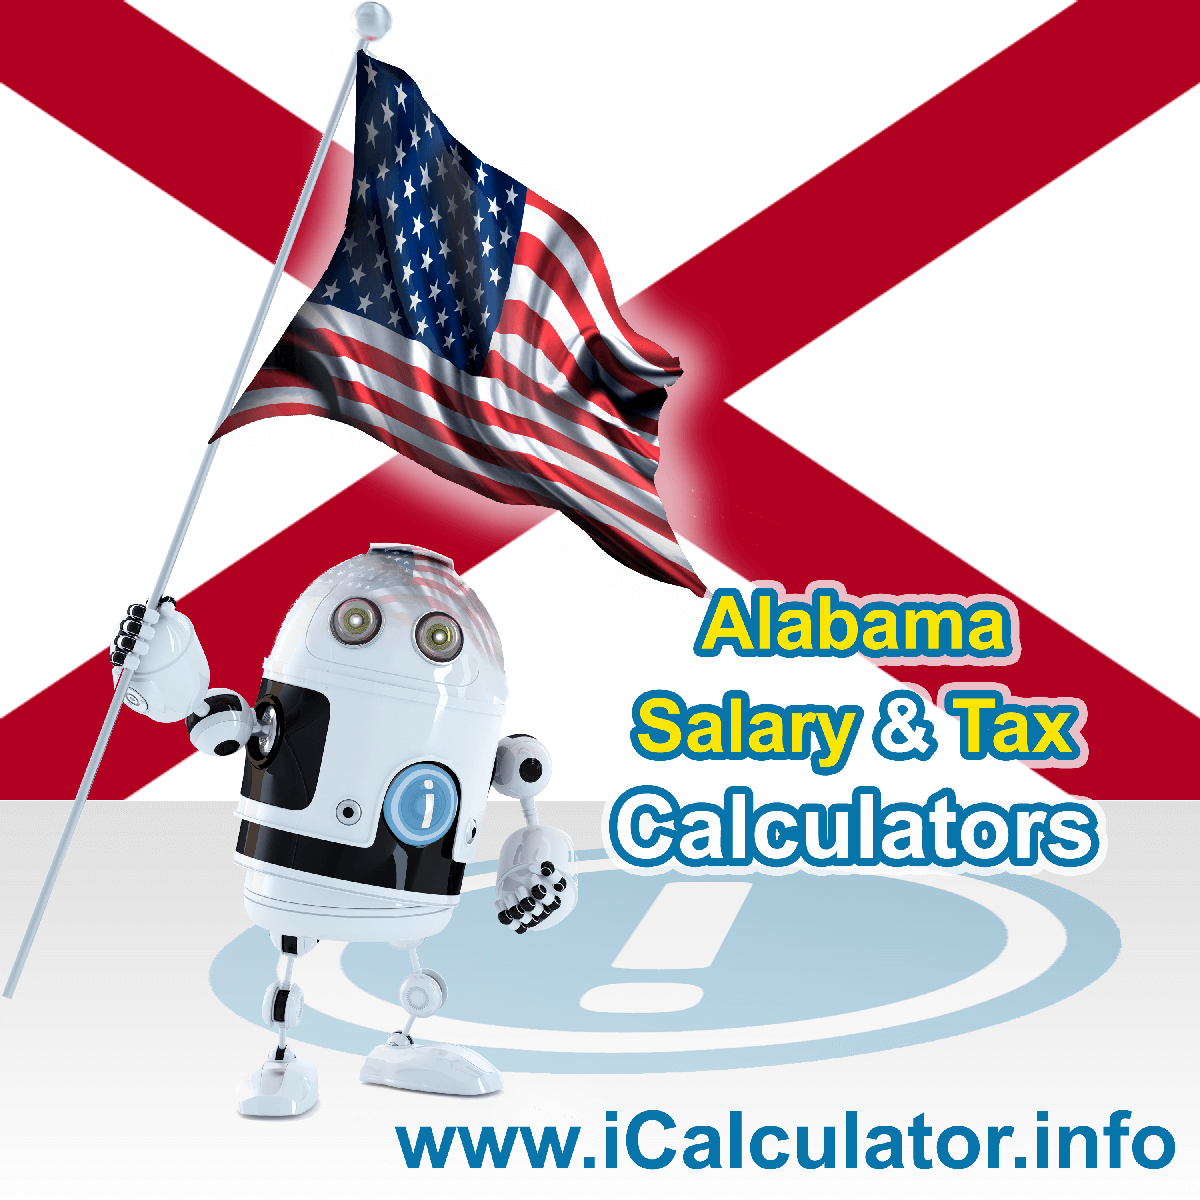 Alabama Salary Calculator 2020 | iCalculator | The Alabama Salary Calculator allows you to quickly calculate your salary after tax including Alabama State Tax, Federal State Tax, Medicare Deductions, Social Security, Capital Gains and other income tax and salary deductions complete with supporting Alabama state tax tables